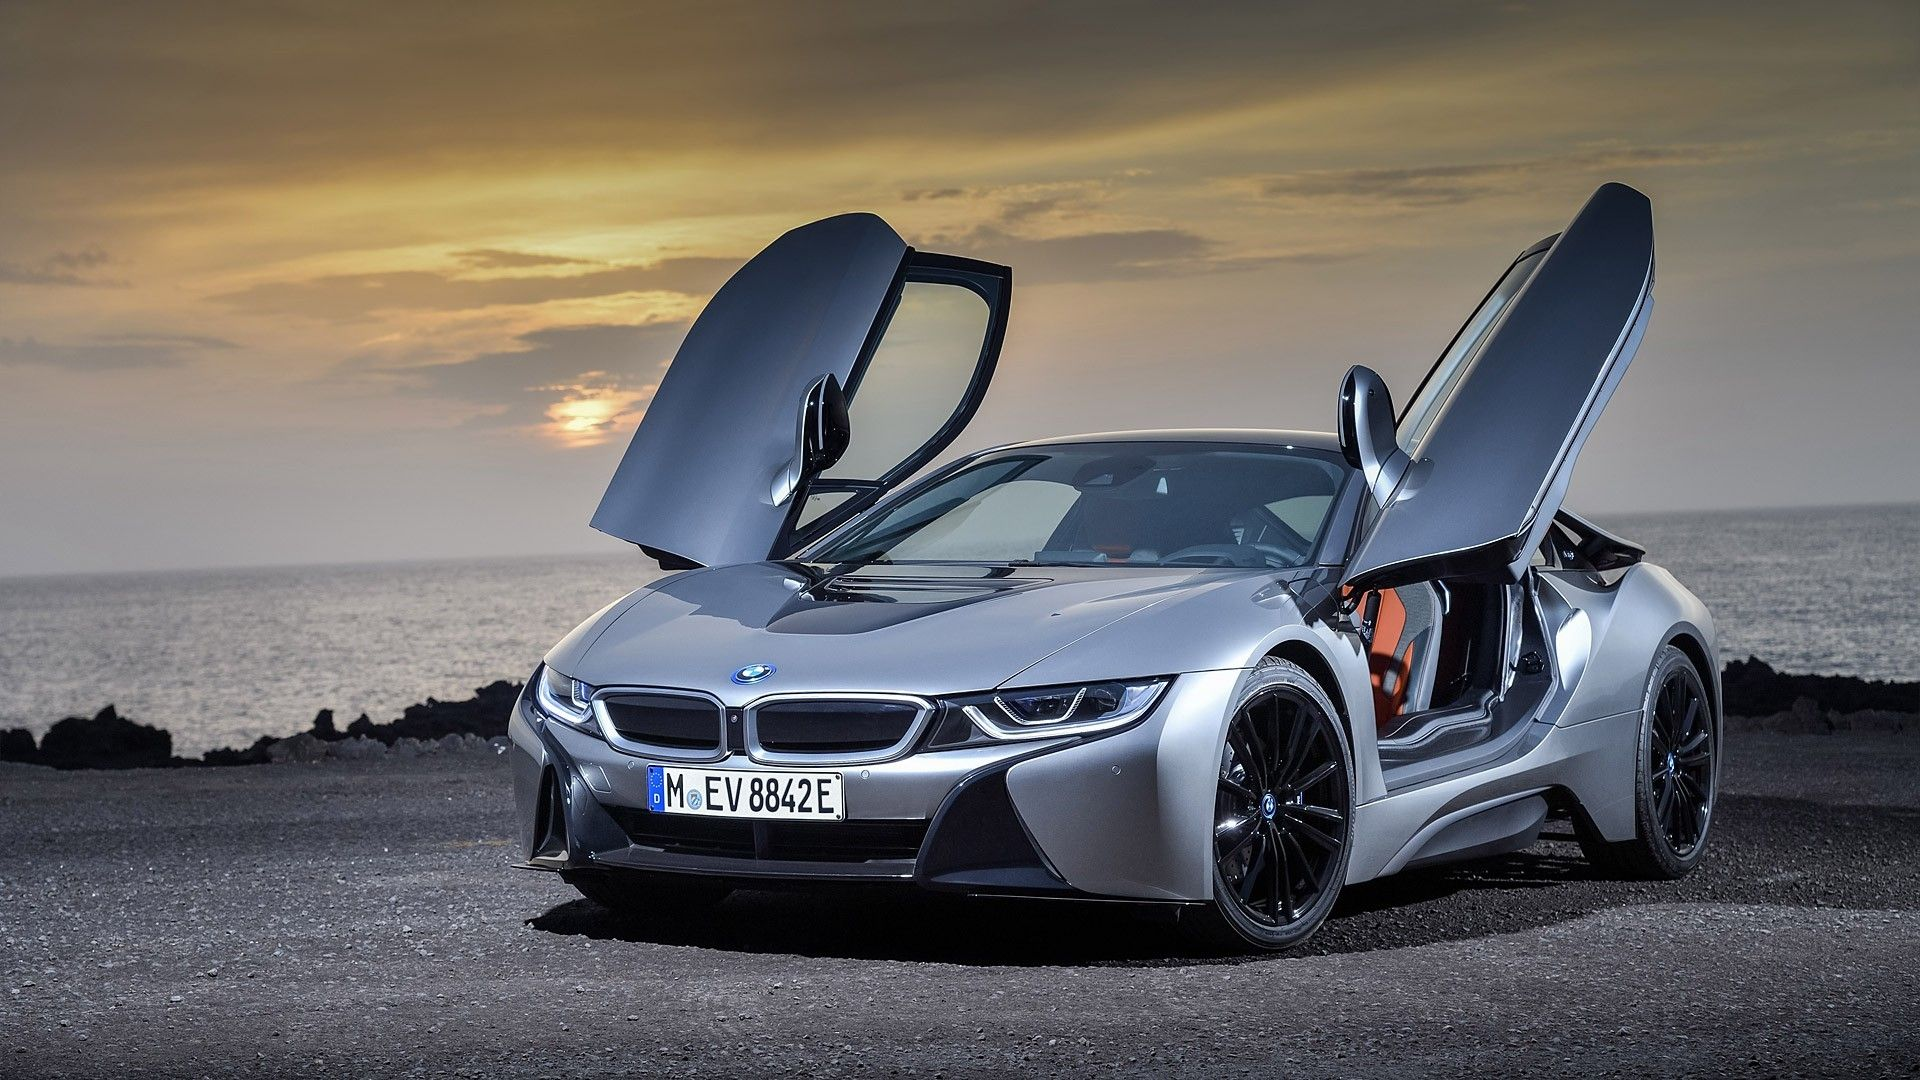 Bmw I8 In 2020 Luxury Cars Bmw New Luxury Cars Dream Cars Bmw